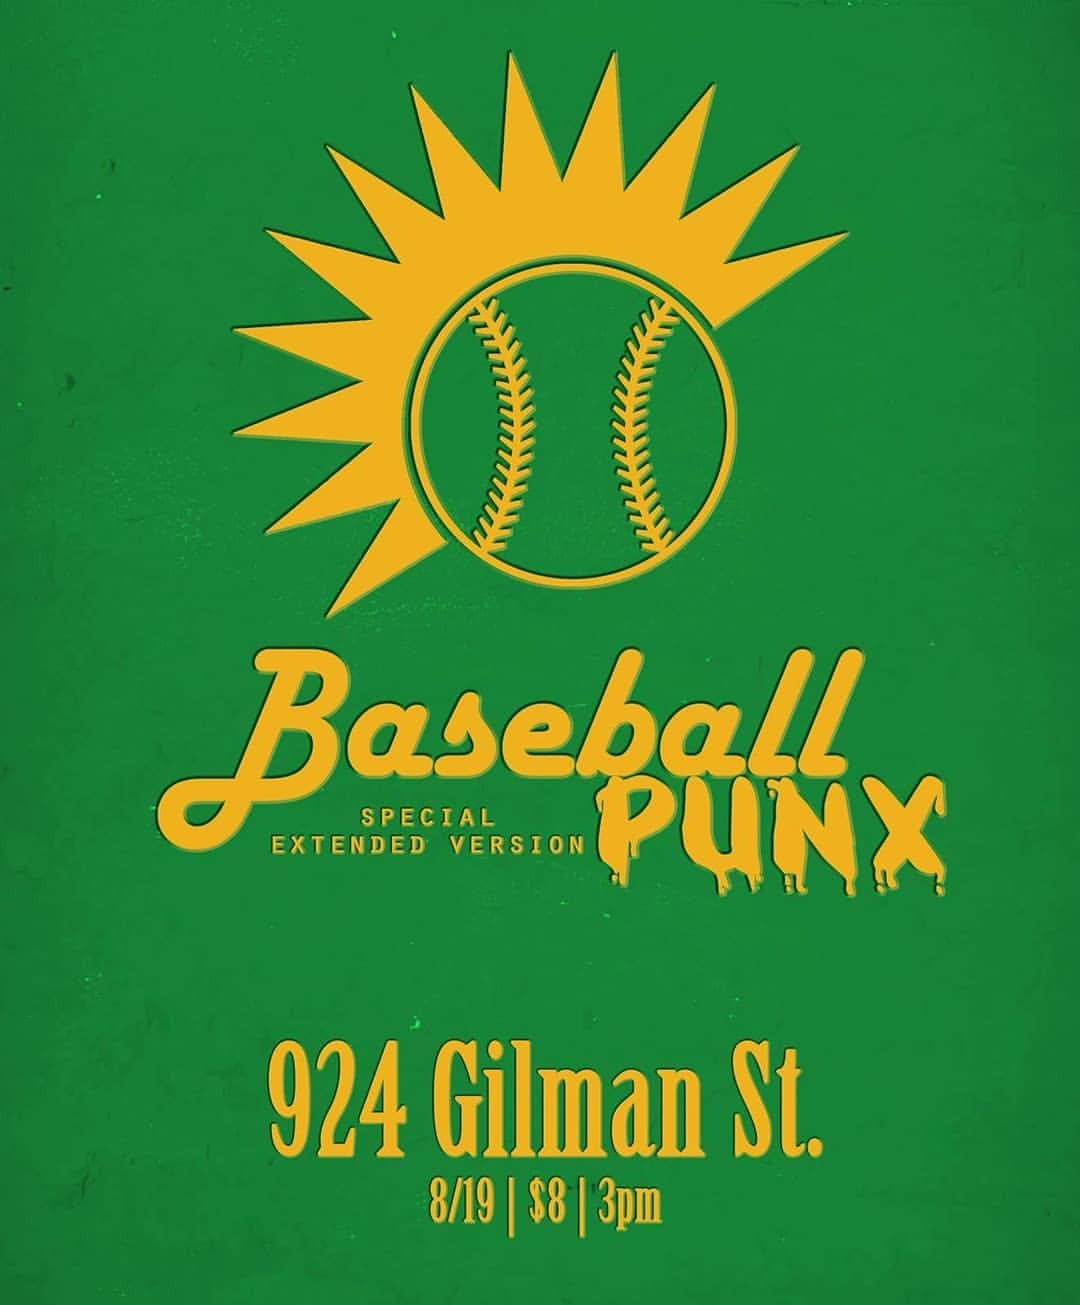 Hey California Bay [bae] A dream come true is happening this Sunday in Berkeley, I'm doing a screening at @924gilmanstreet come out for a special afternoon screening of Baseball Punx w/ some bonus footage that I still have to add!!! Buncha cool bands are playing too, come kick it! (at 924 Gilman)